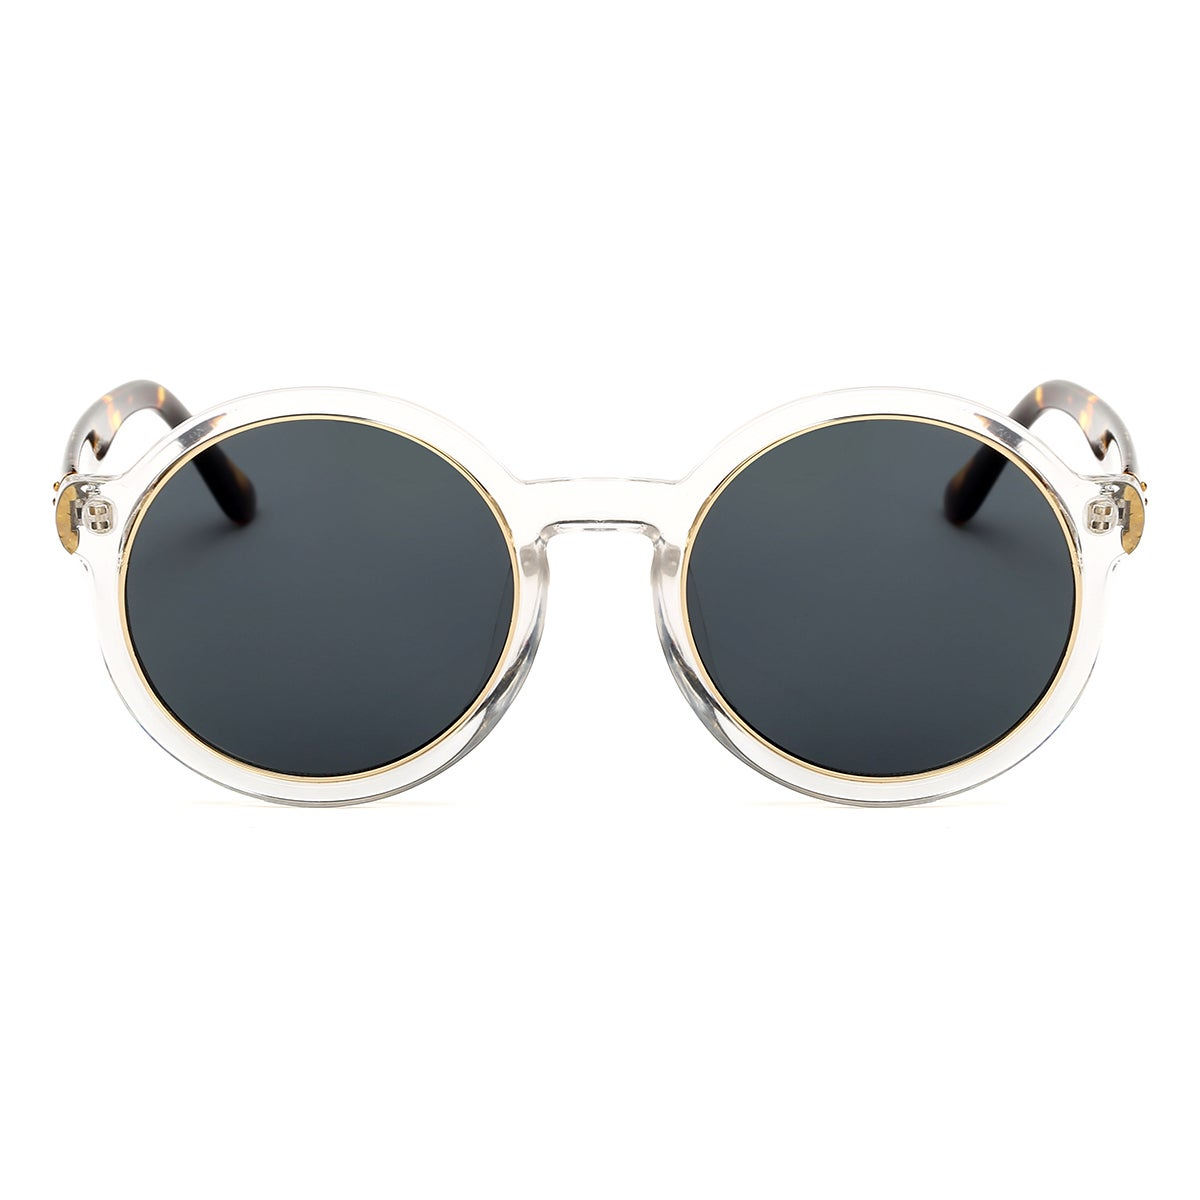 d7c110ce7a0 Shop Dasein Round Sunglasses - On Sale - Free Shipping On Orders Over  45 -  Overstock.com - 12143820